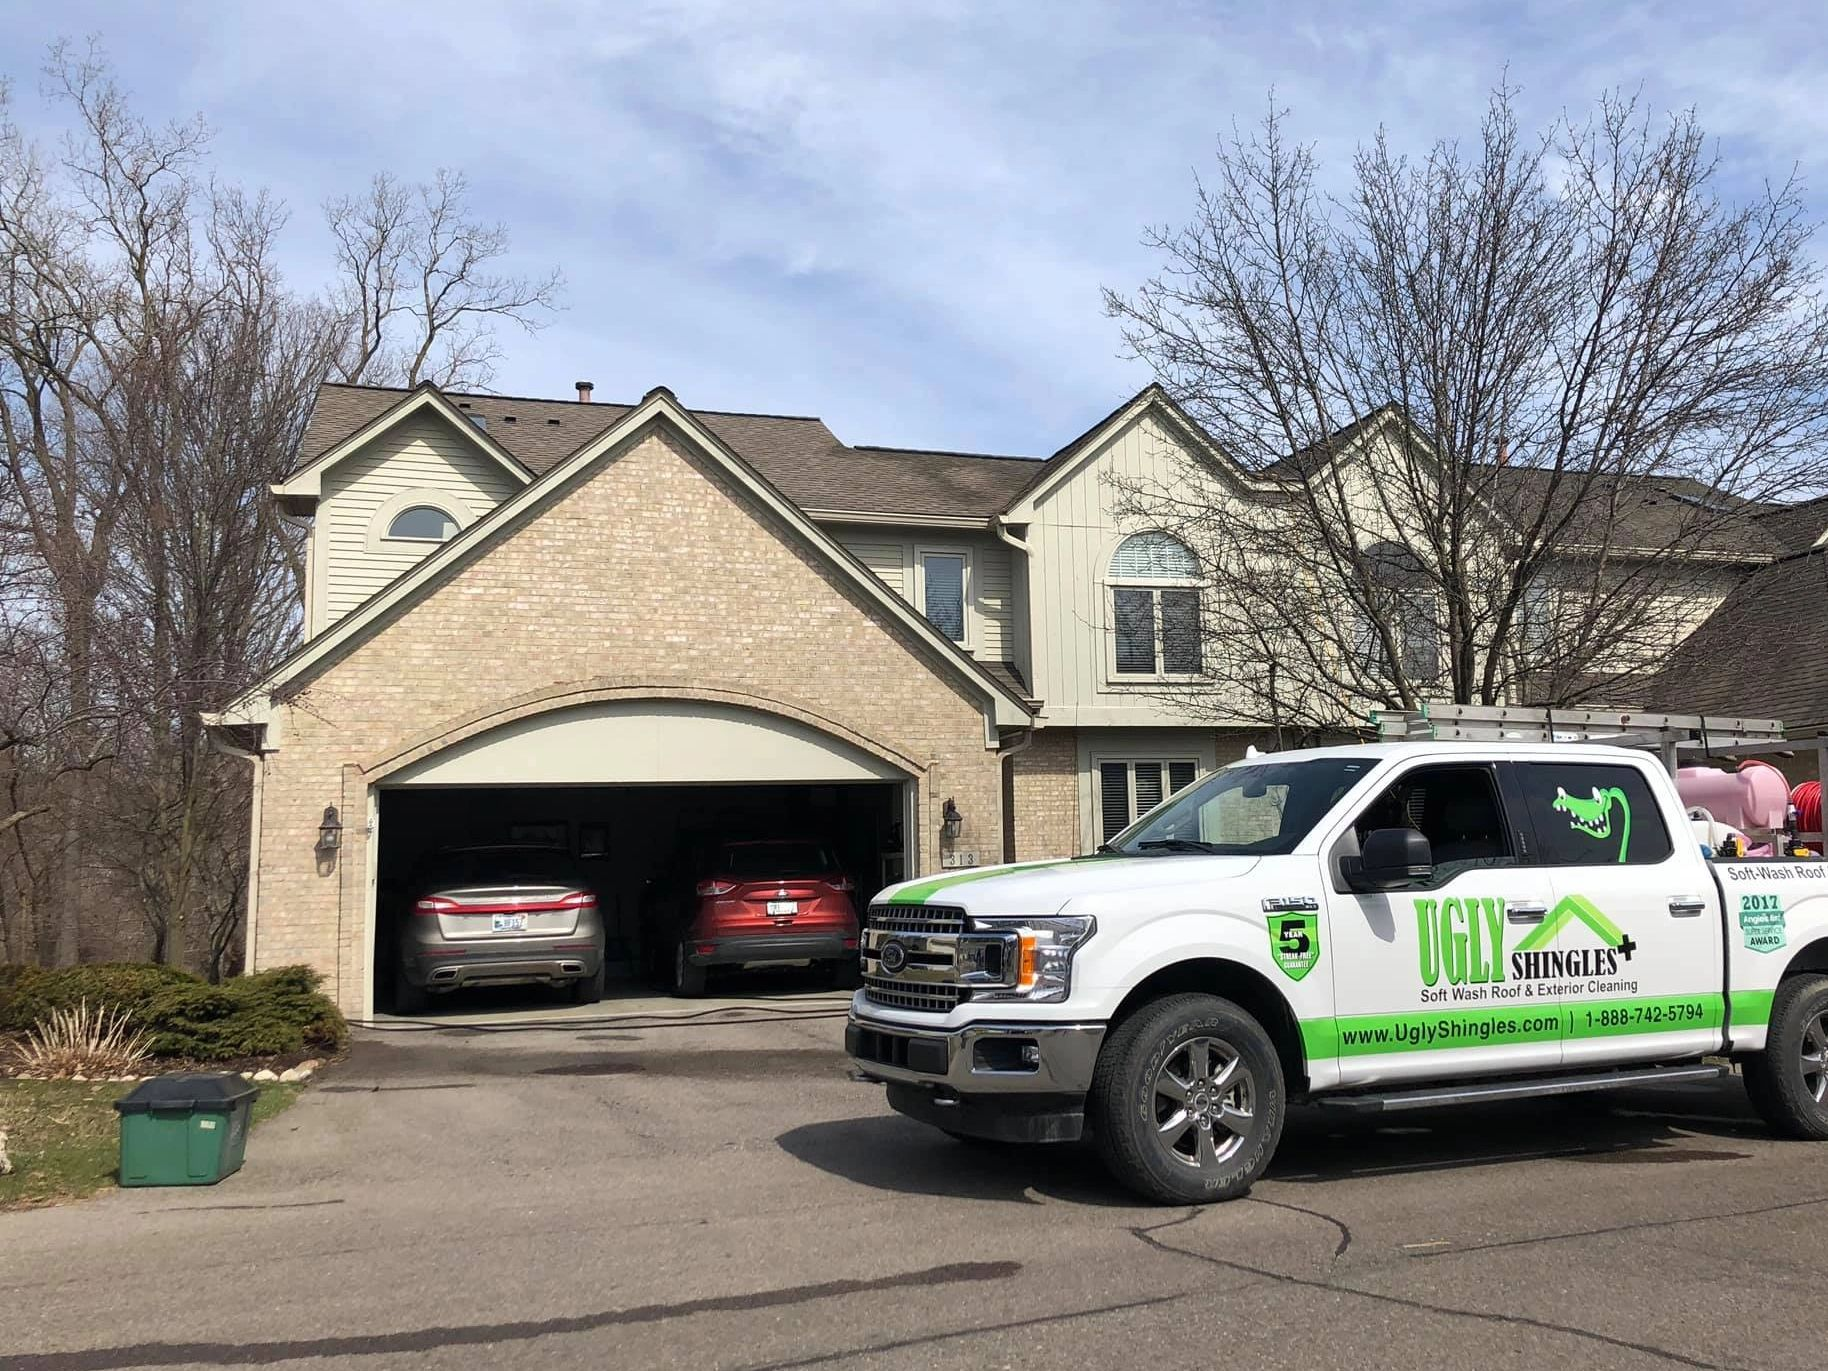 ugly shingles roof cleaning michigan softwash mold mildew algae exterior washing commercial hoa unit